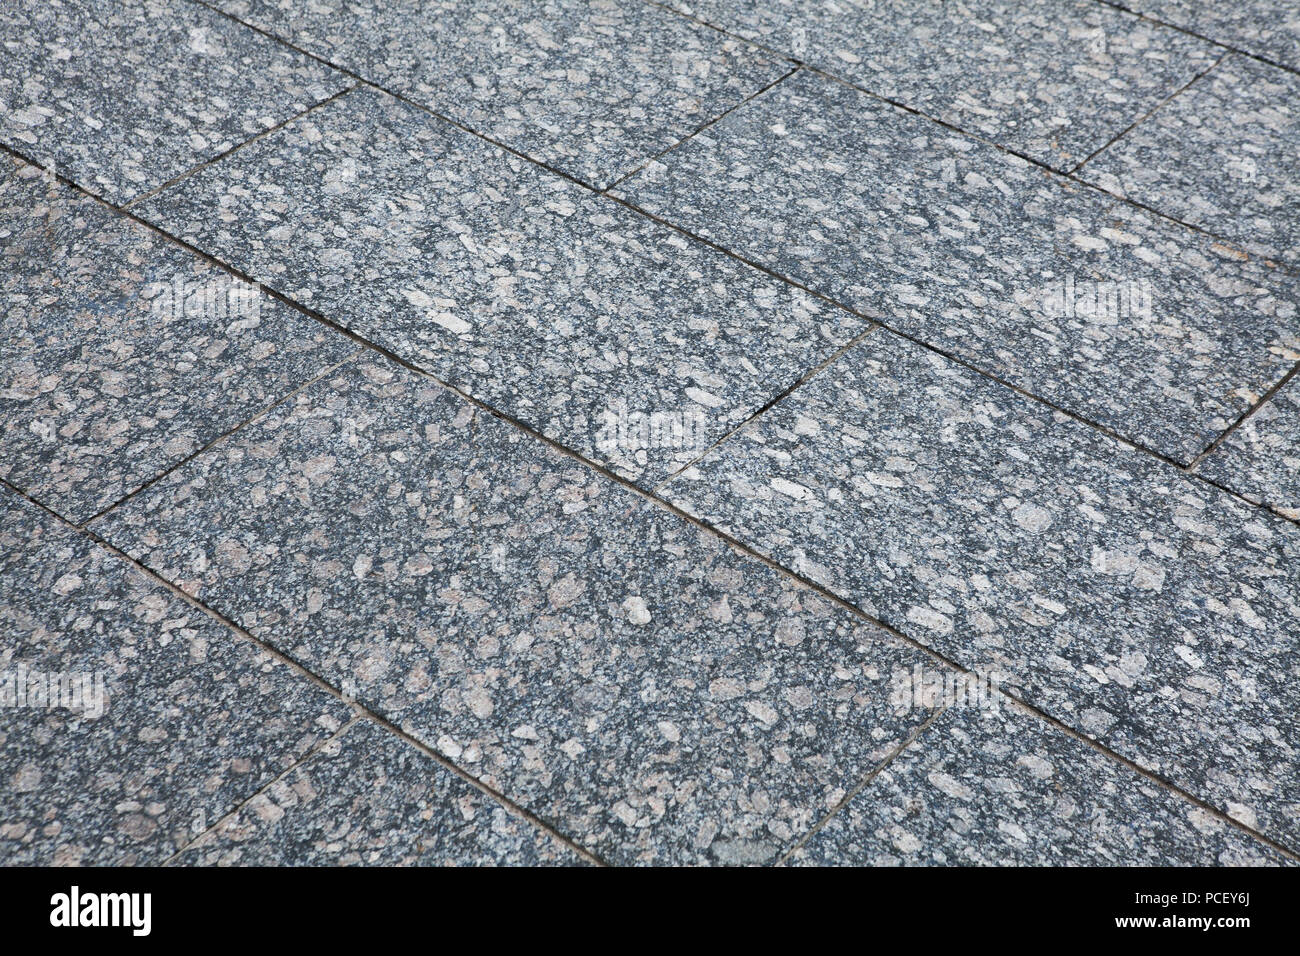 Marble Wall Tiles Stock Photos & Marble Wall Tiles Stock Images - Alamy